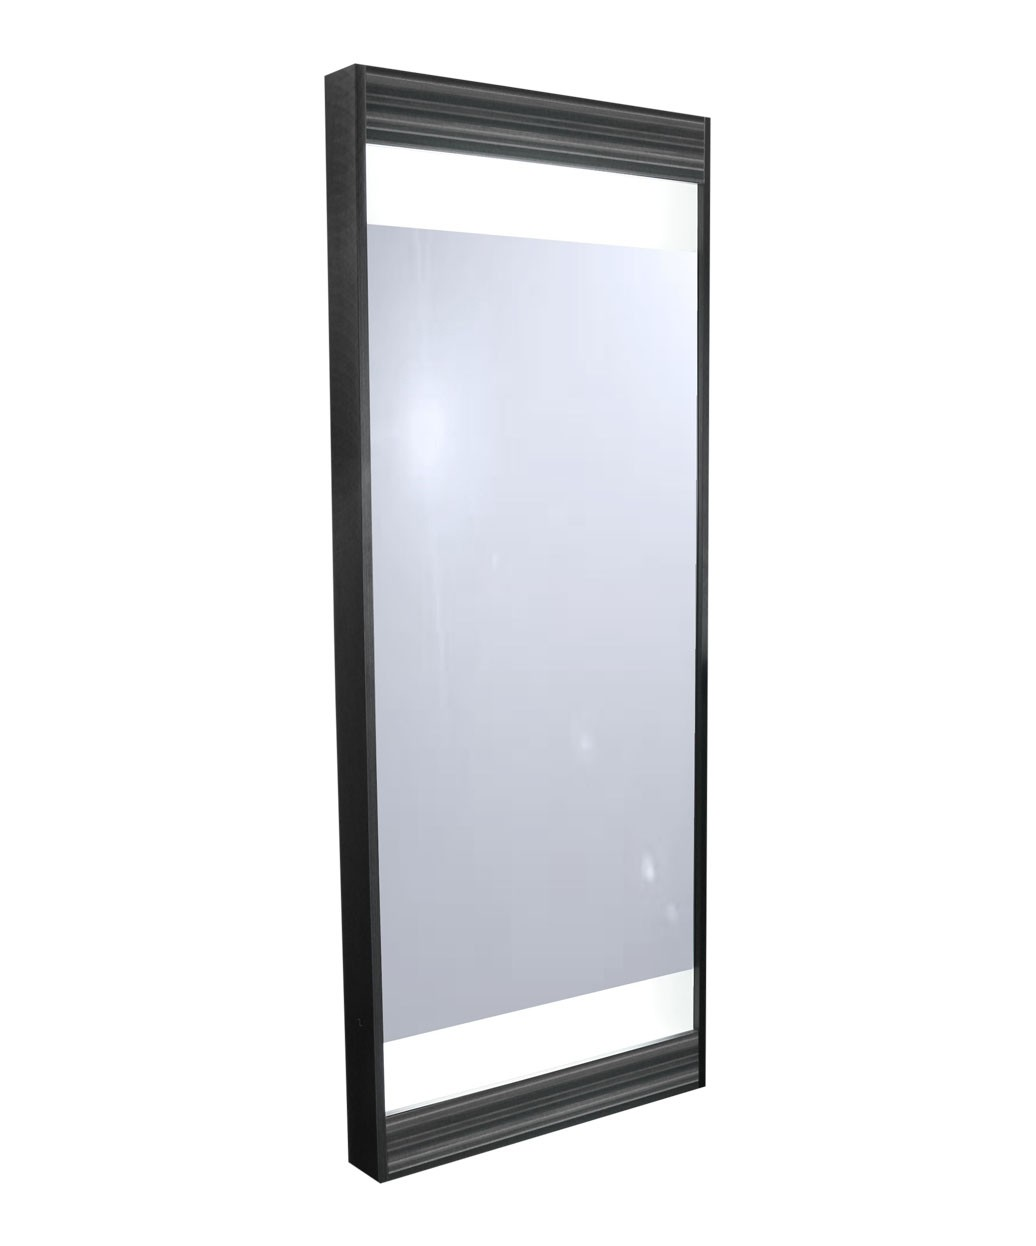 6621-32 Edge Full Length Mirror with T5 Lights